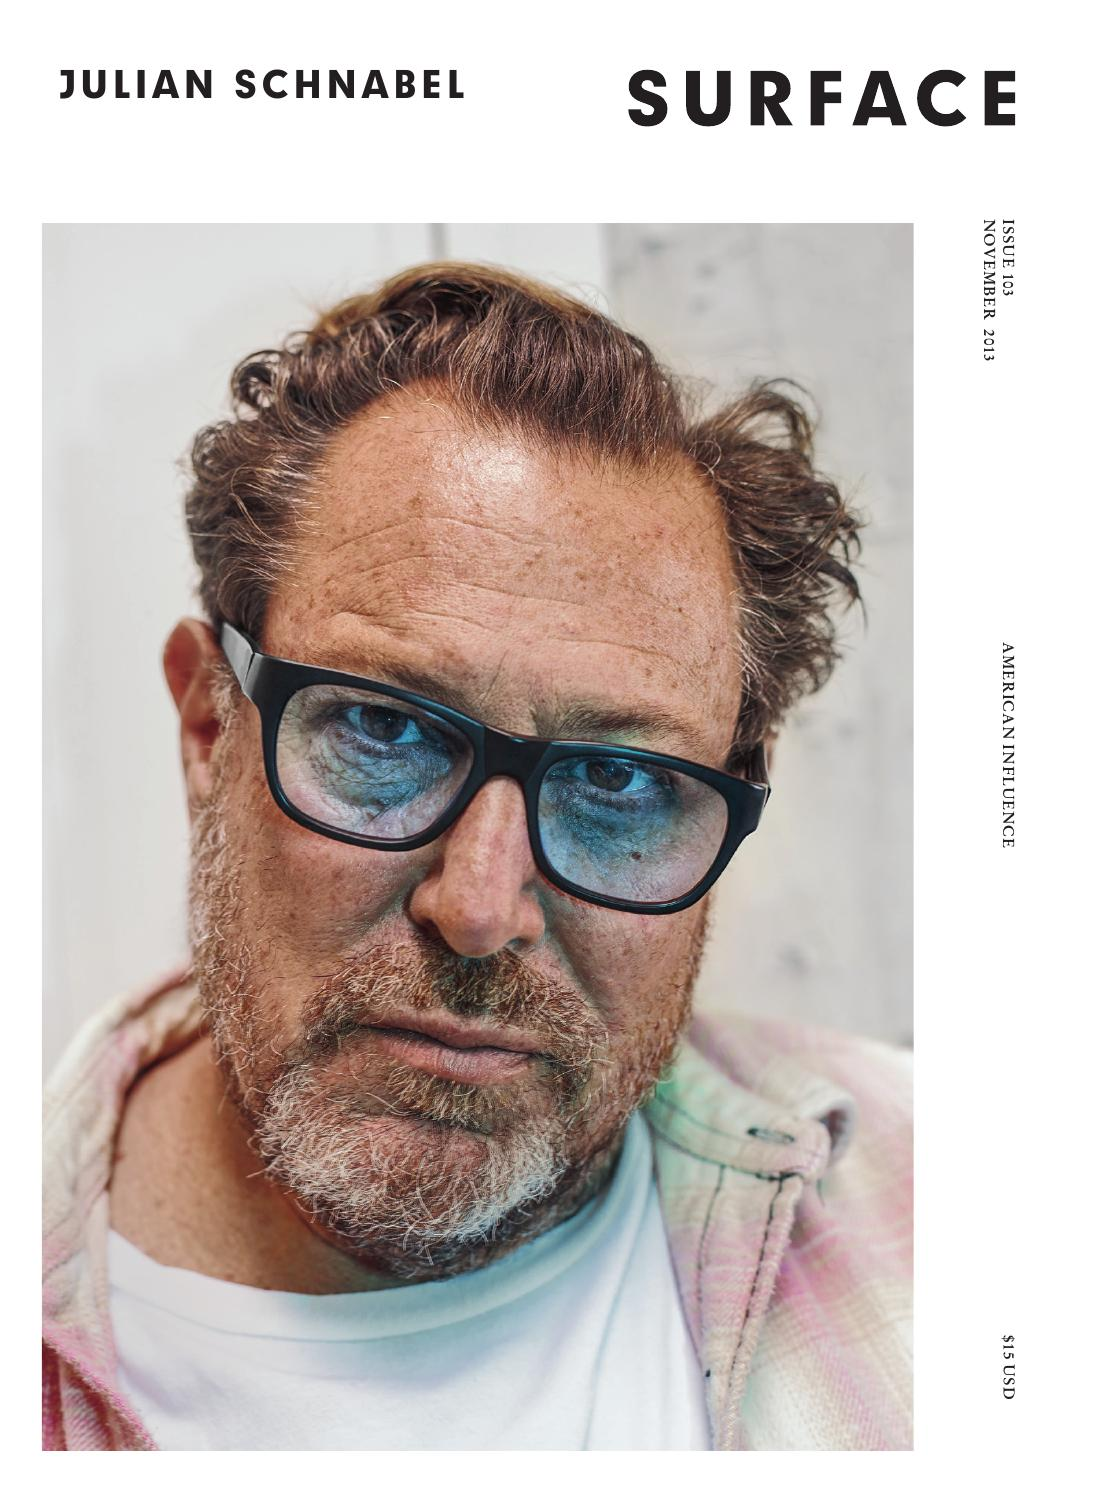 Surface Julian Schnabel November 2013 By Surfacemag